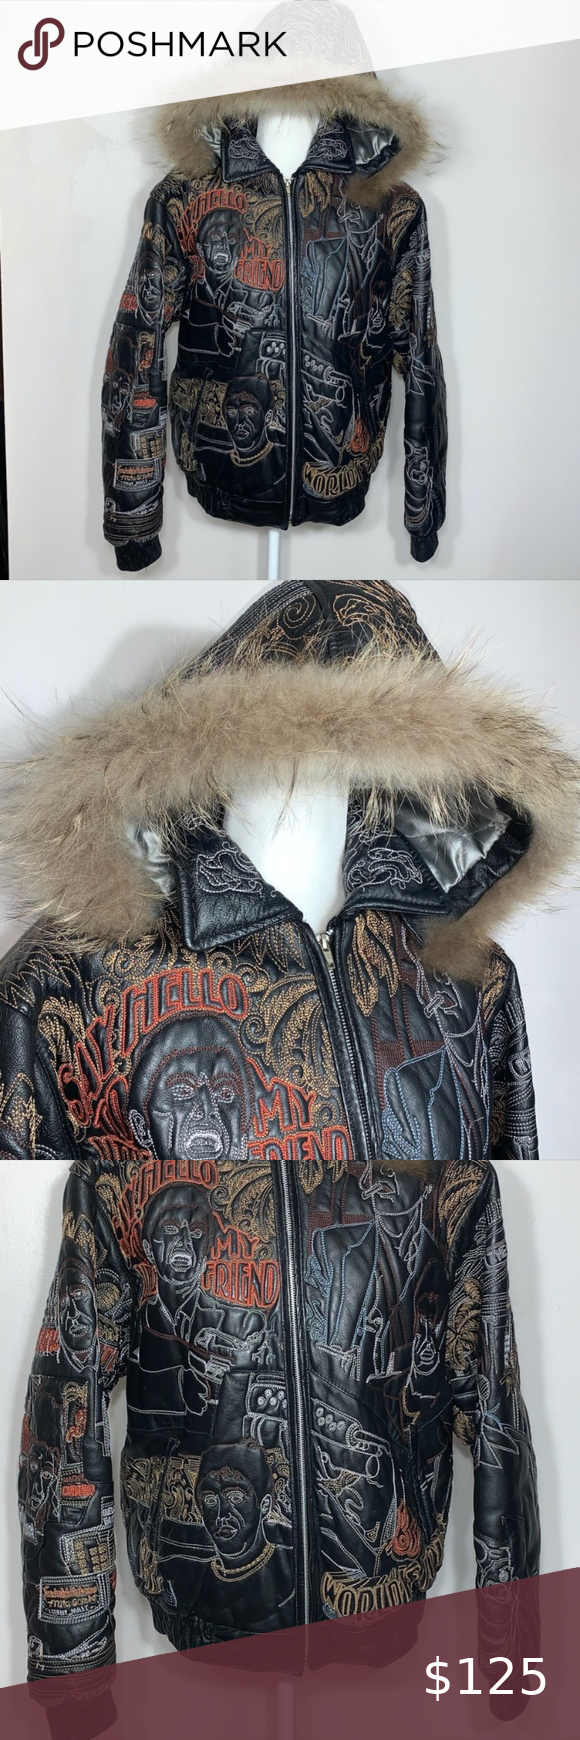 Vilanto Embroidery Leather Jacket Unisex Embroidery Everywhere Leather Jacket Lined Inside 2 Pockets Outside And Leather Jacket Jackets Clothes Design [ 1740 x 580 Pixel ]